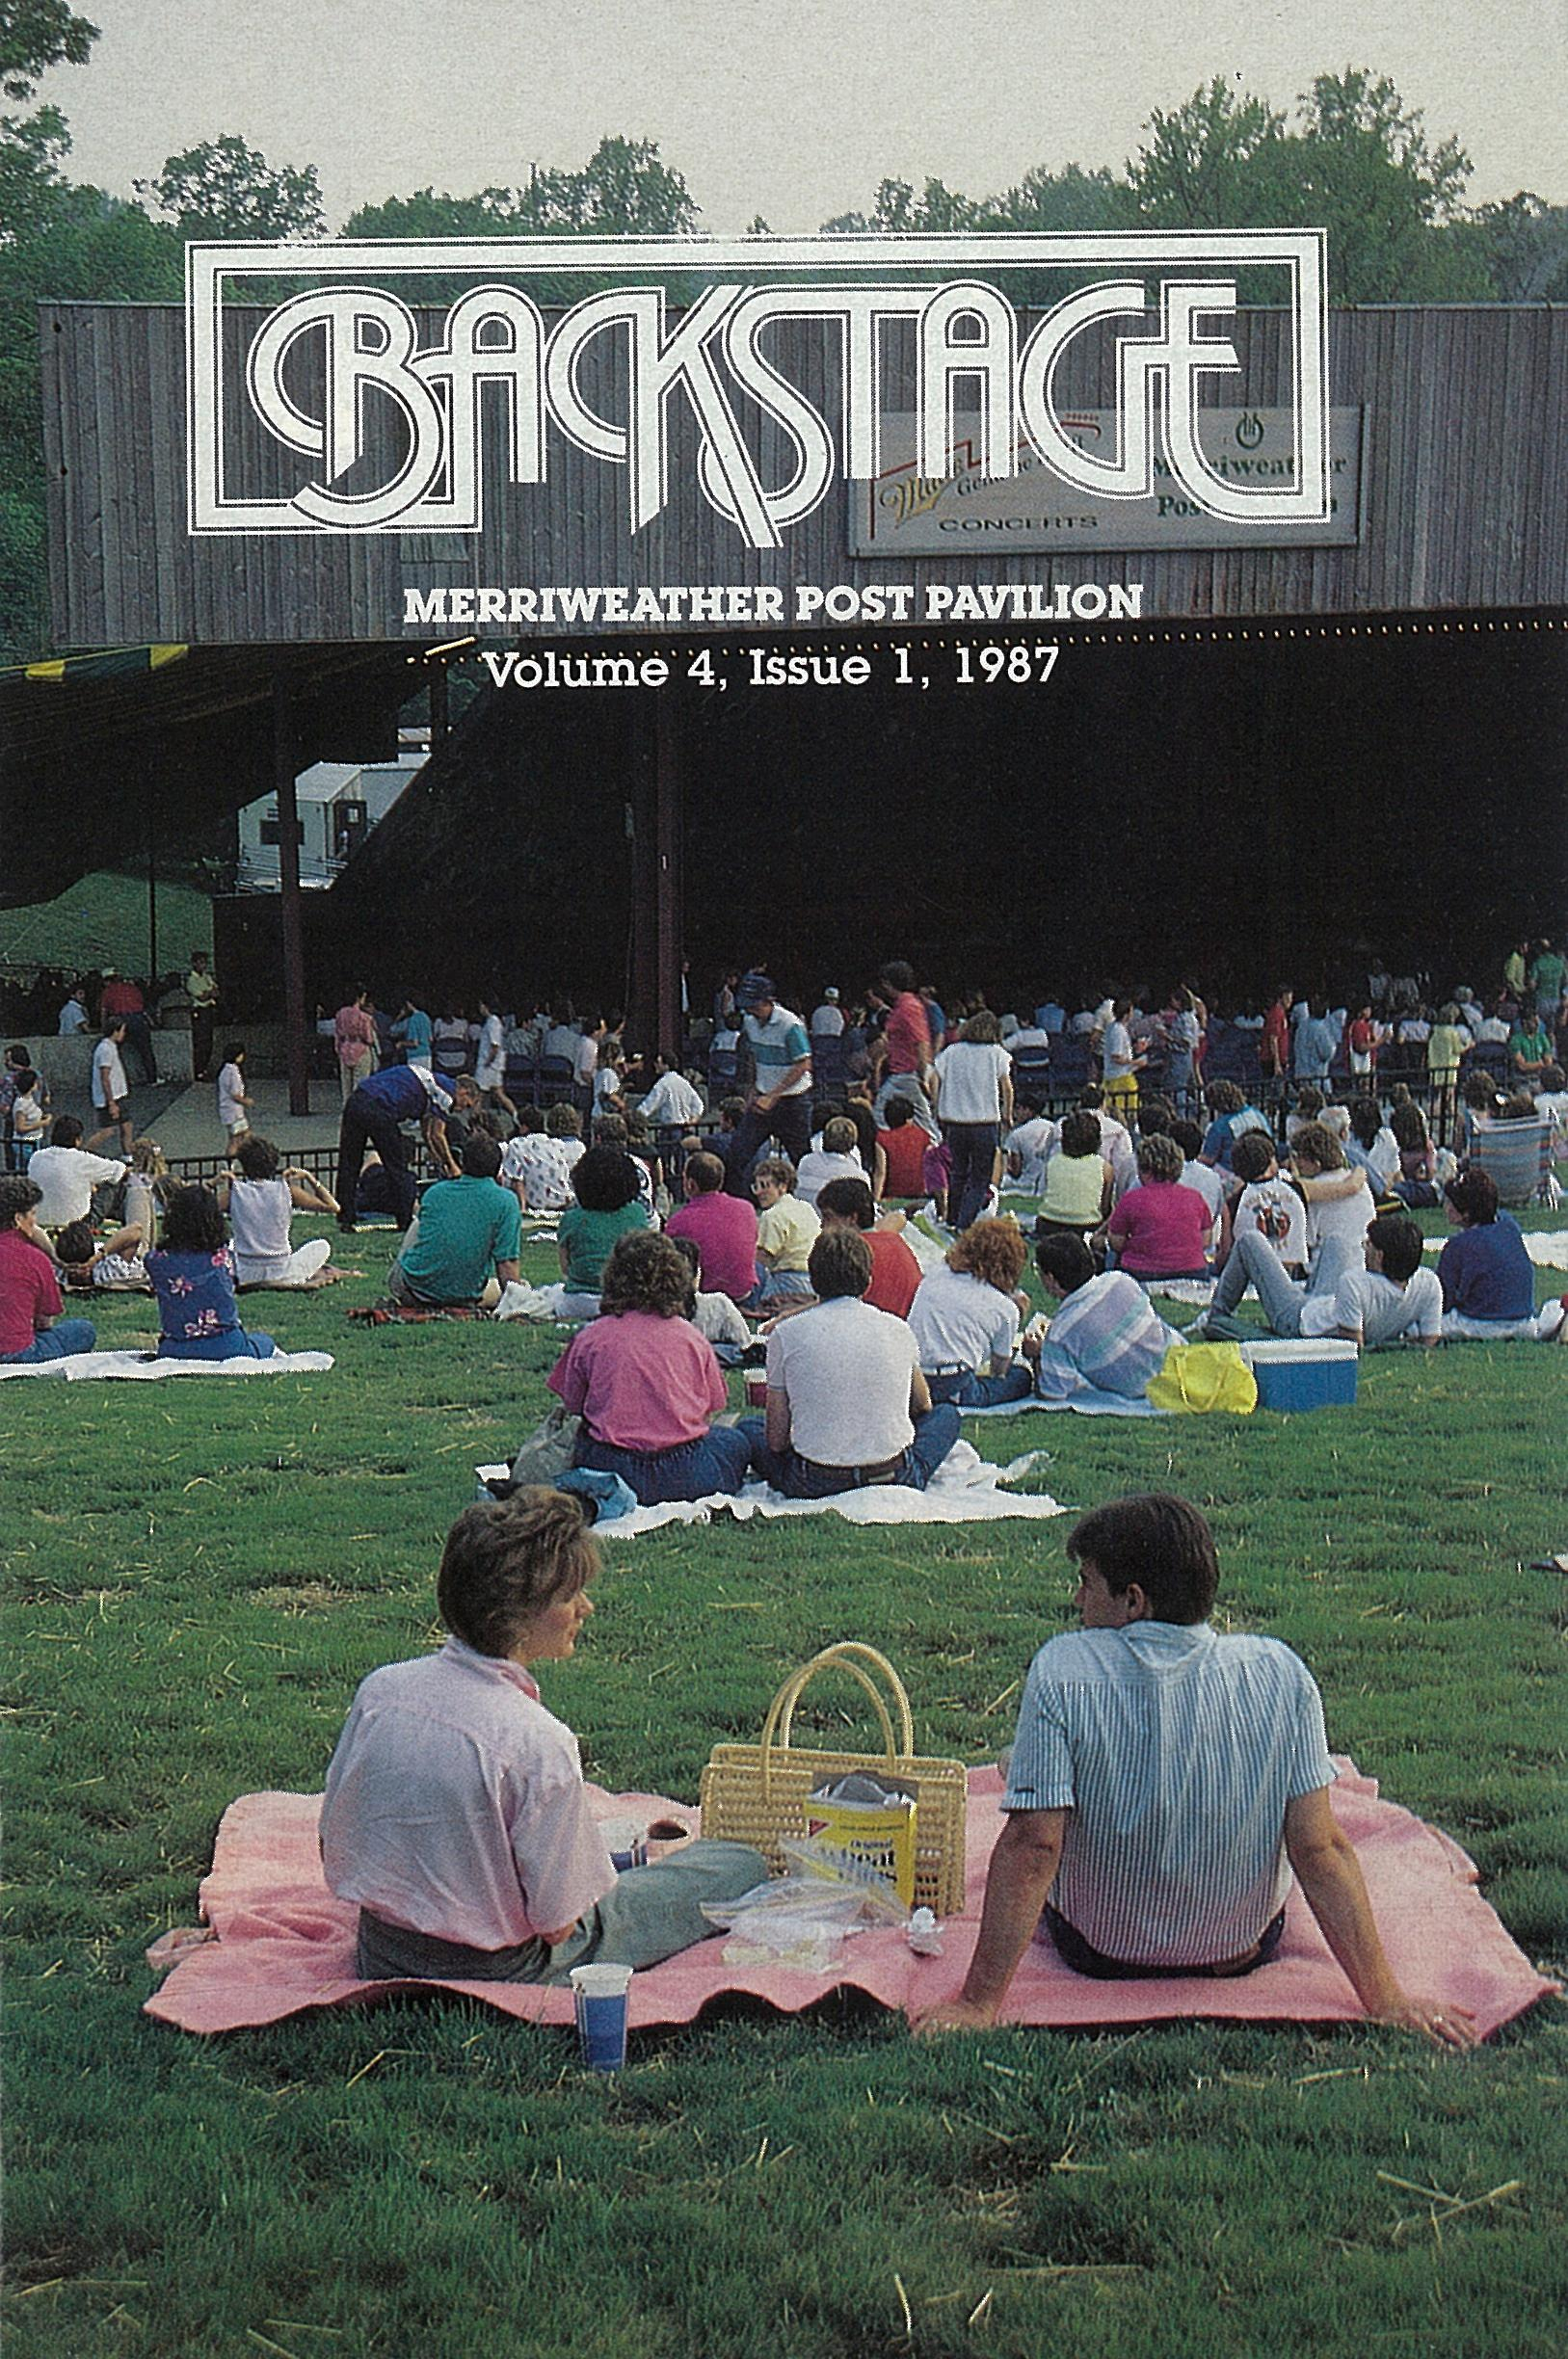 1987 edition of Backstage. (Courtesy of Merriwether Post Pavilion)